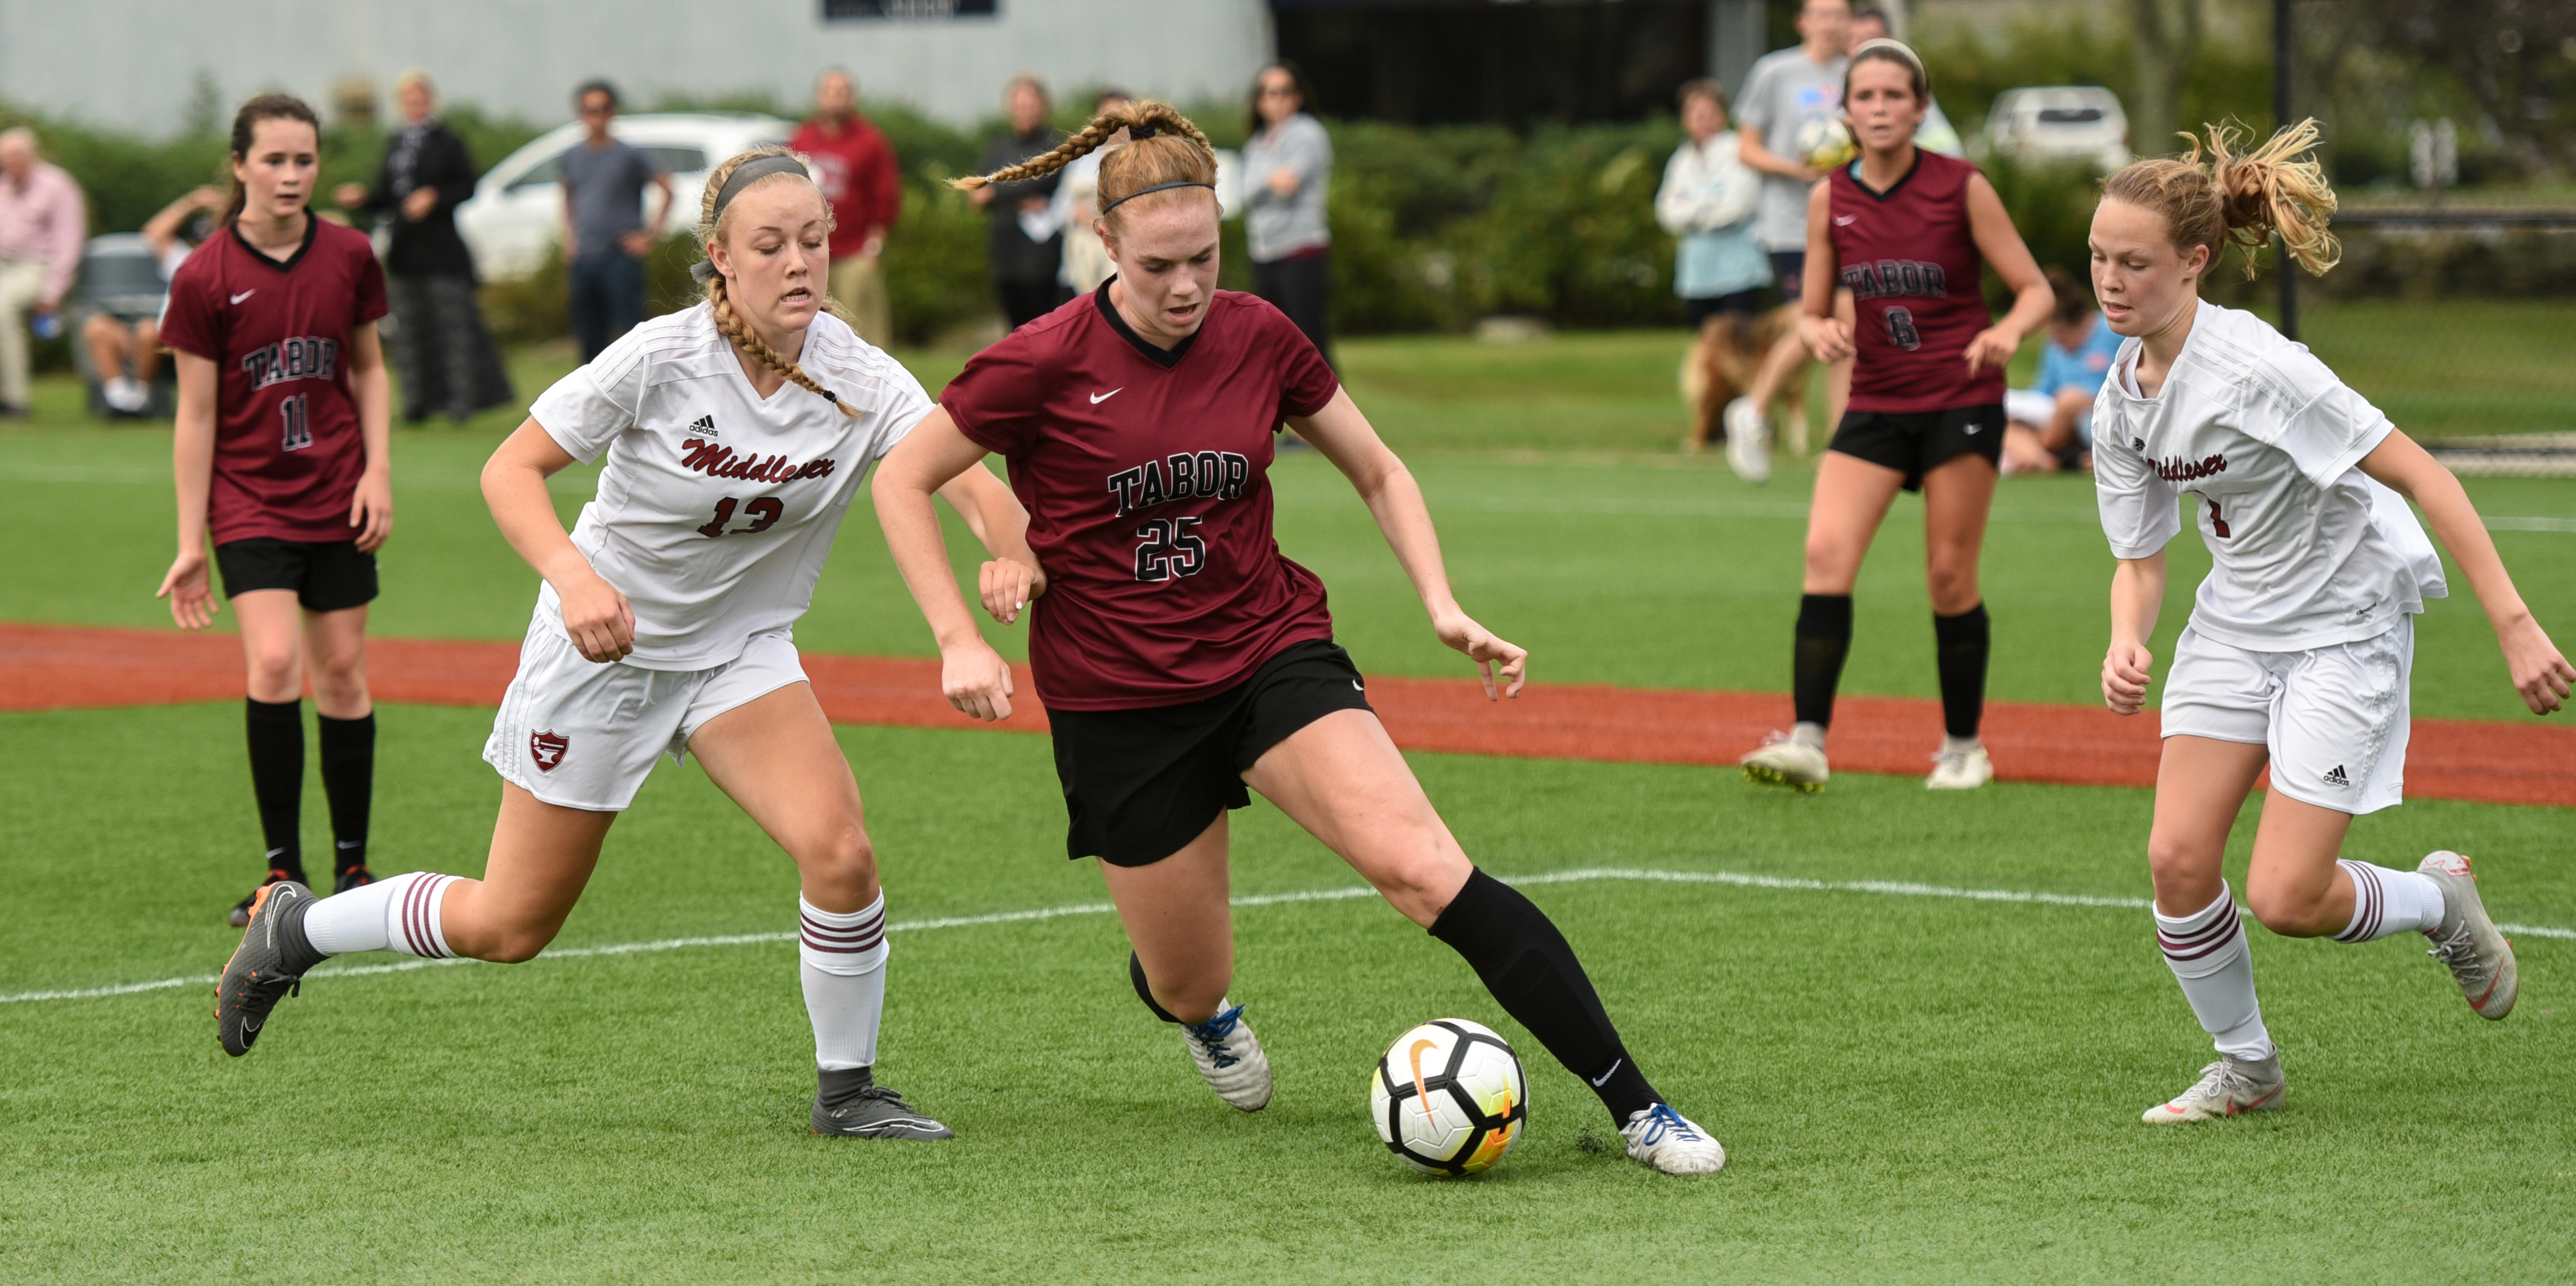 Caroline Conti Catherine Barry Named All Usa Girls Soccer First Team